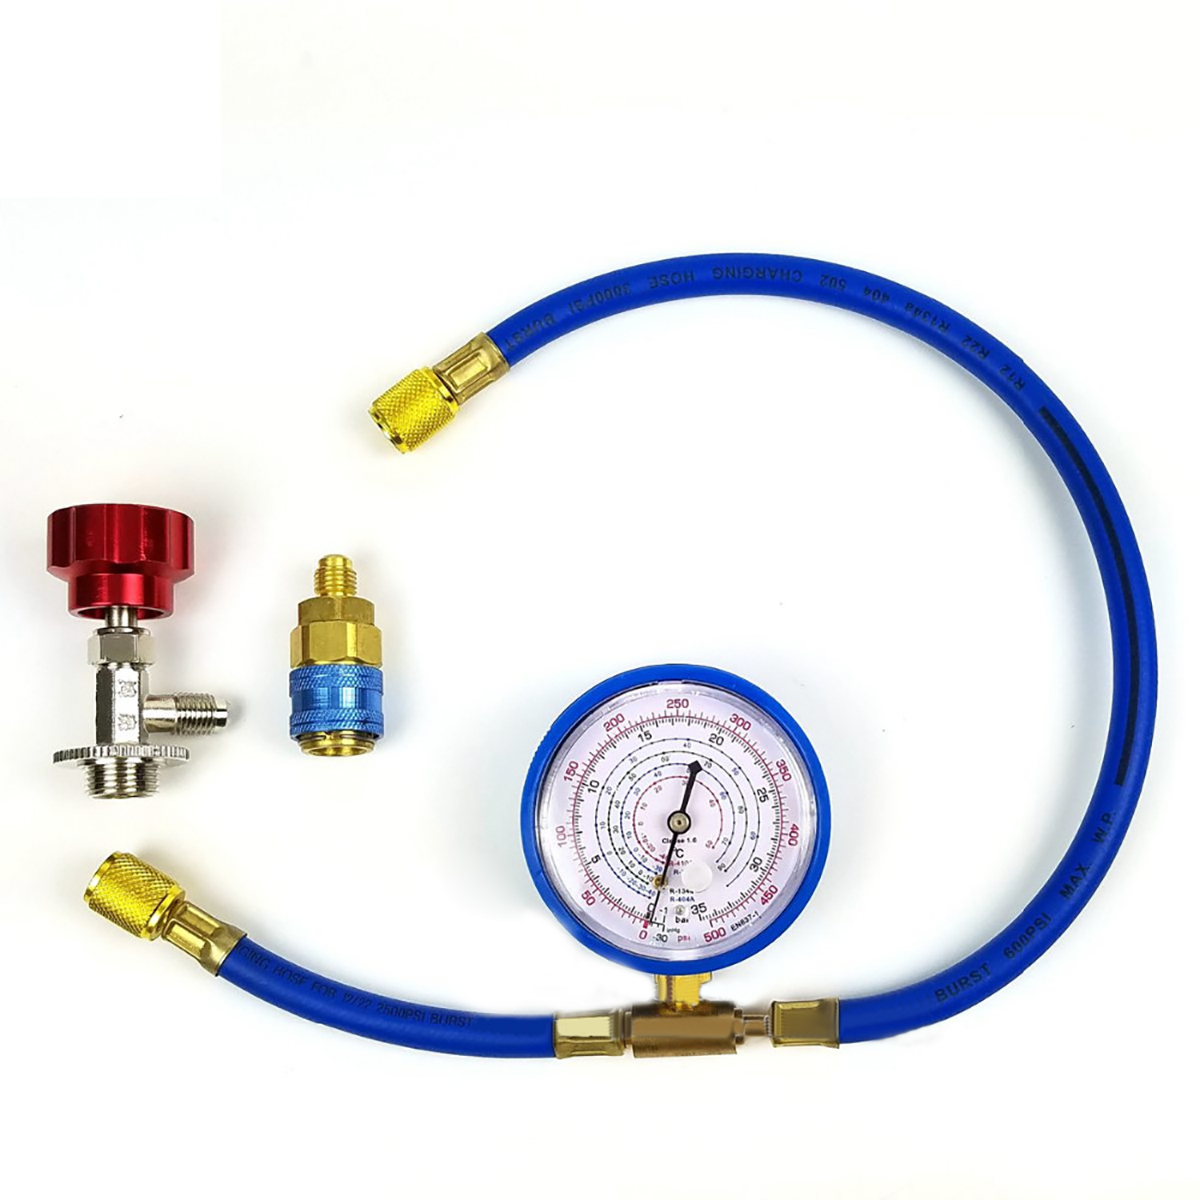 1 Set M14 R134a Air Conditioning Refrigerant Charging Hose With Gauge Recharge Measuring Tool Fit For Most Asian